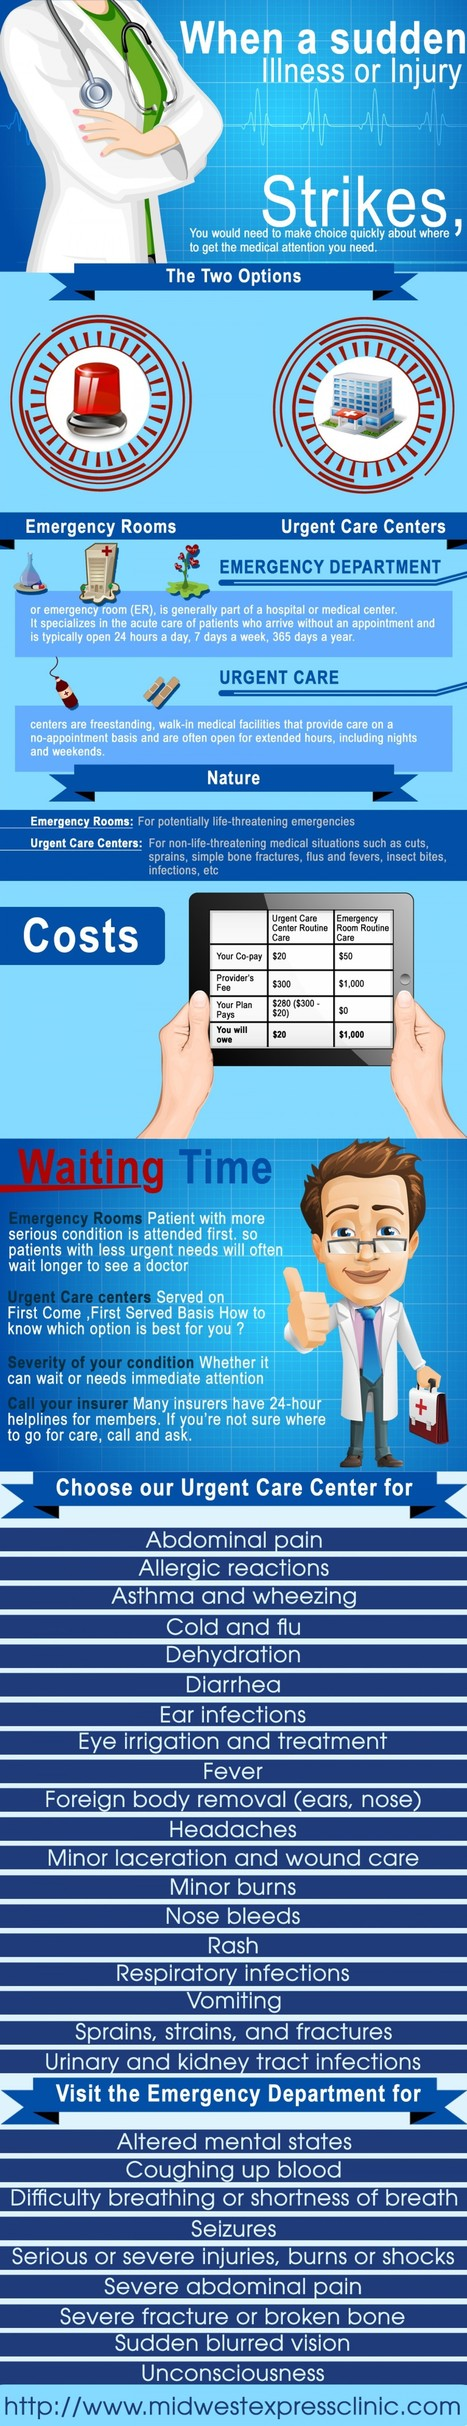 urgent-care-vs-emergency-room_52ce670bd955a_w1500.png (1500x7793 pixels) | Urgent Care vs Emergency Room | Scoop.it